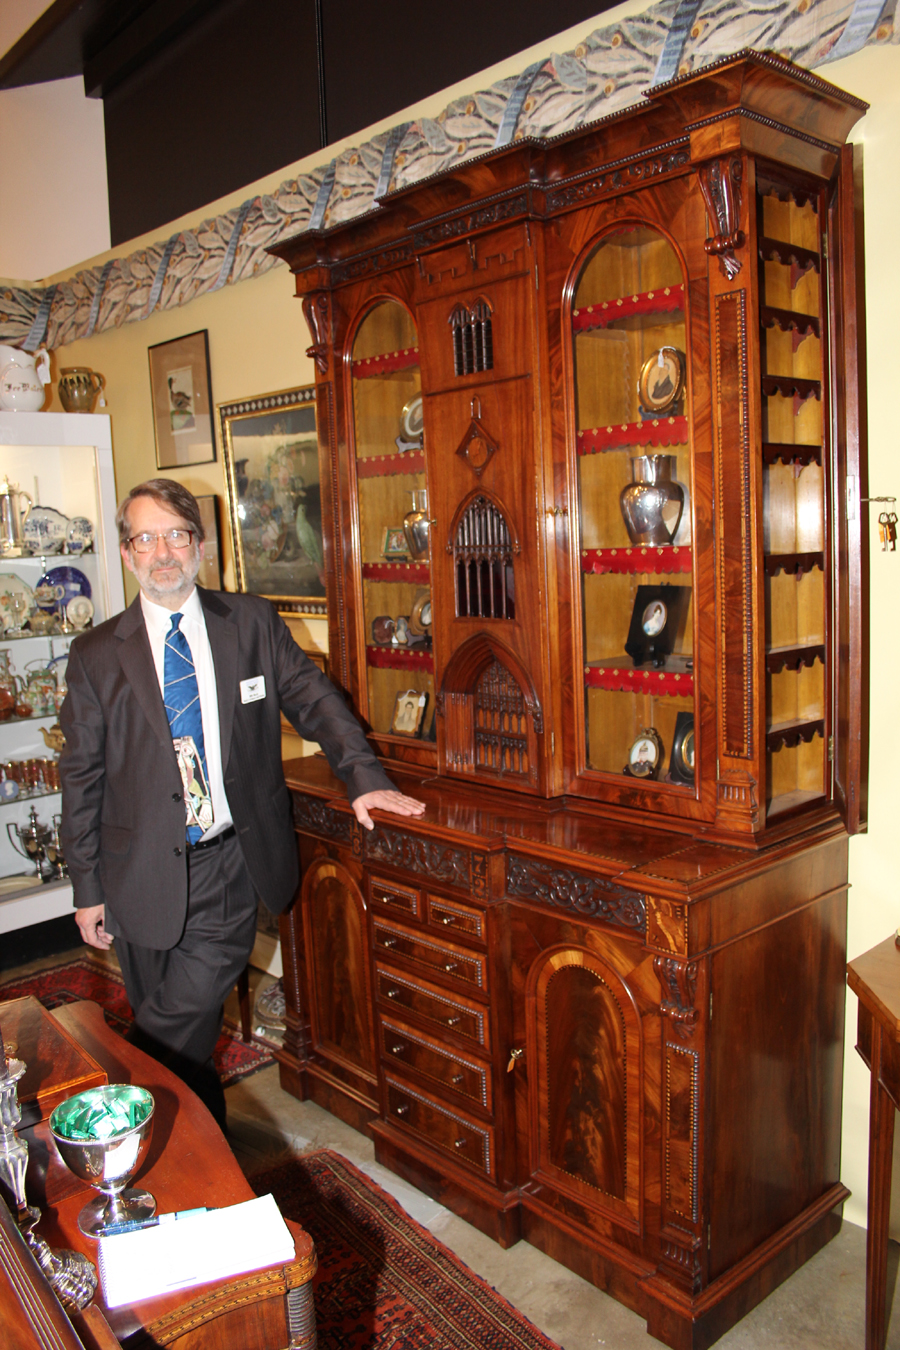 Bill Beck of Beck's Antiques, Fredericksburg, Va., with a spectacular desk-and-bookcase made for the Kendal and District Industrial Exhibition of 1872. The center door represents the central tower of the Kendal Parish Church in Kendal, Westmorland, U.K.